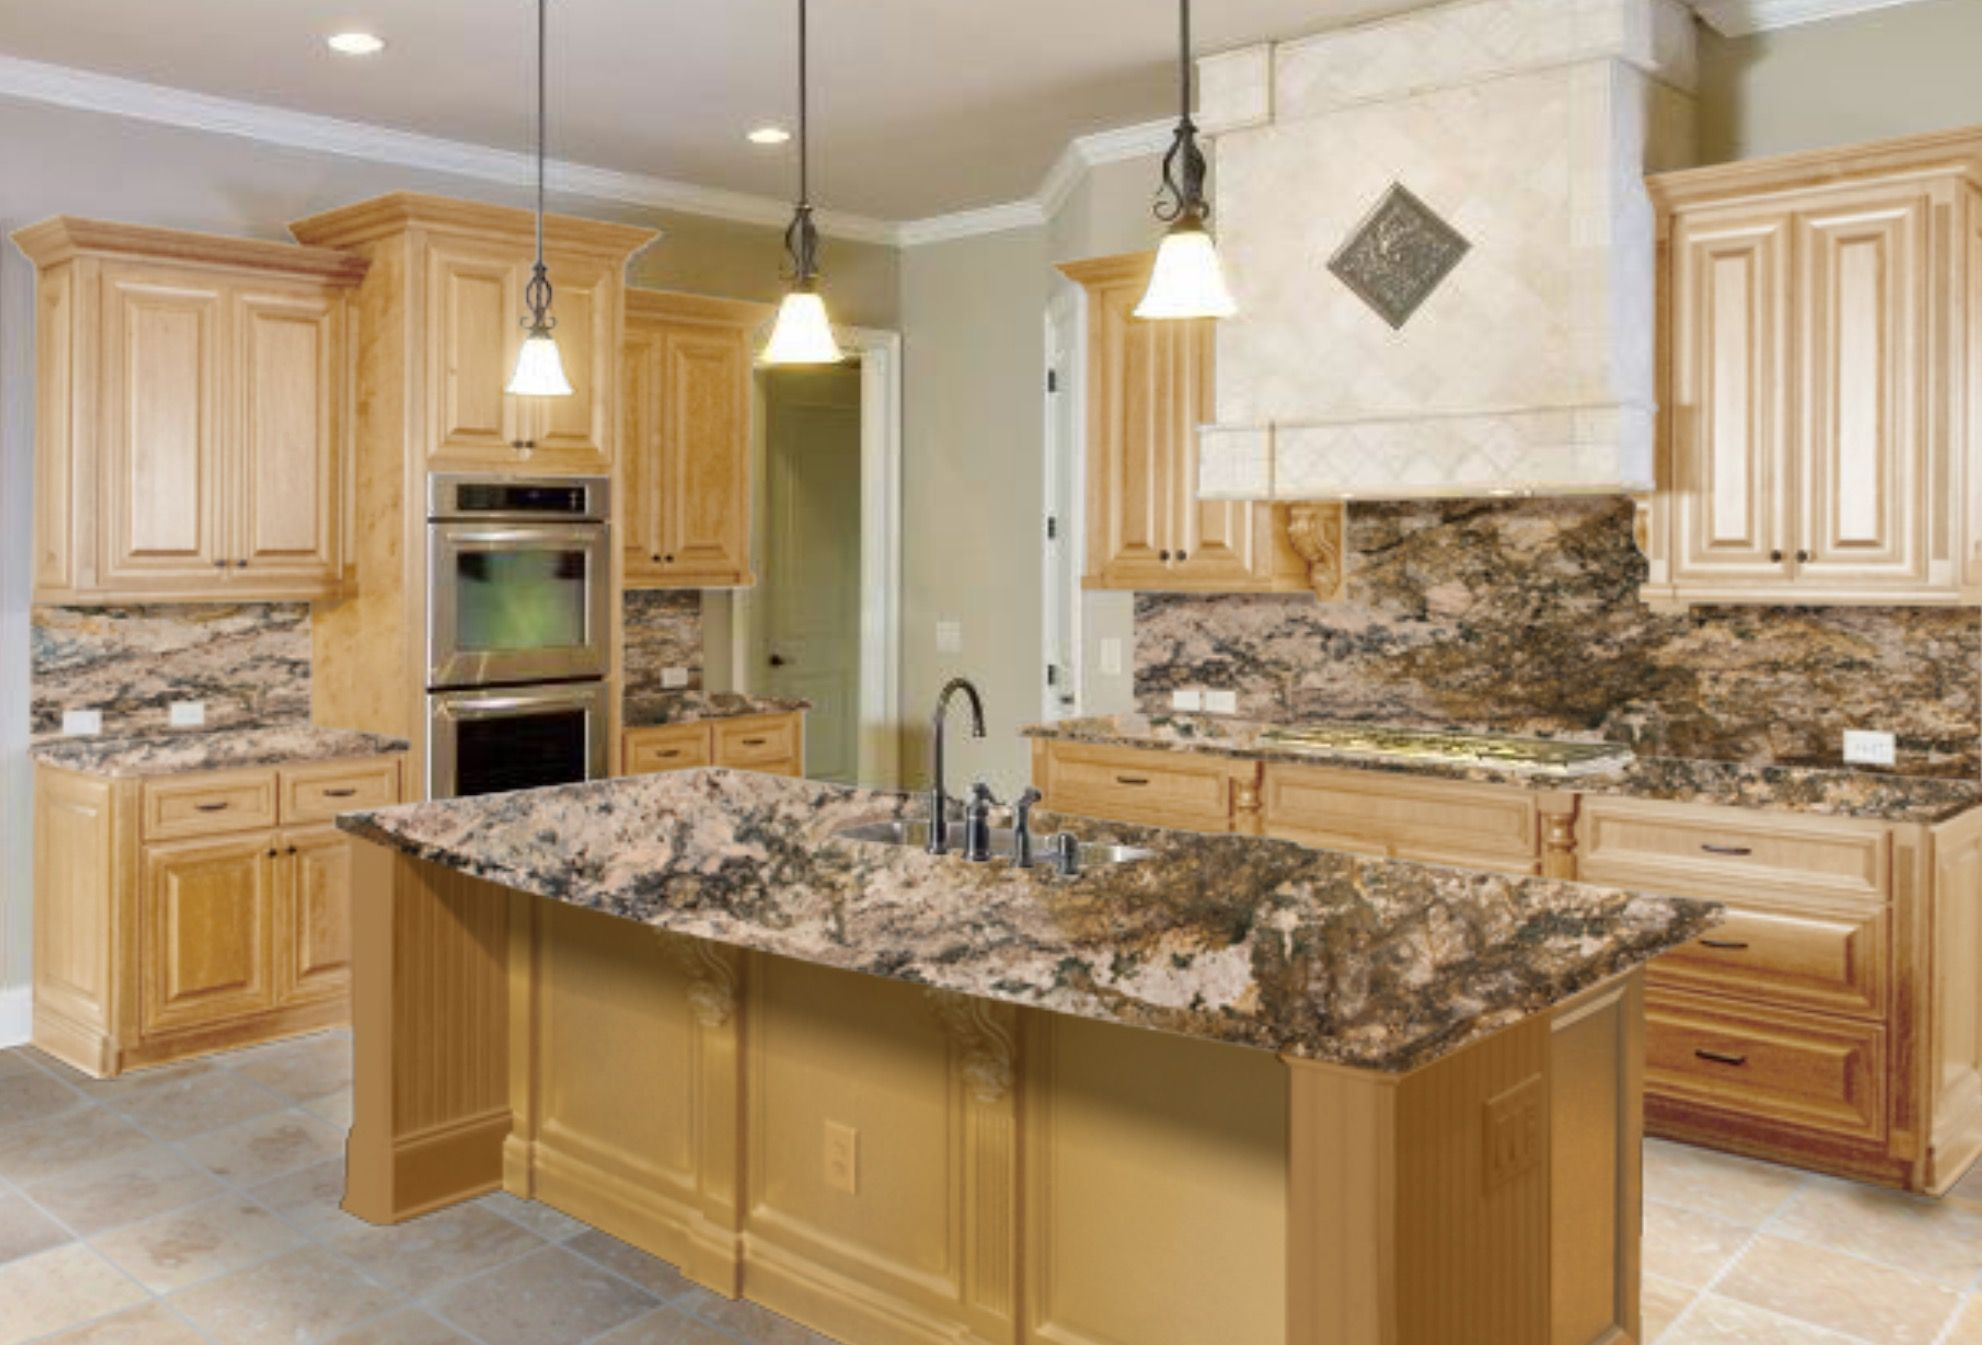 Maple Kitchen Cabinets With Marble Countertops The Right Granite Countertops For Your Maple Cabinets